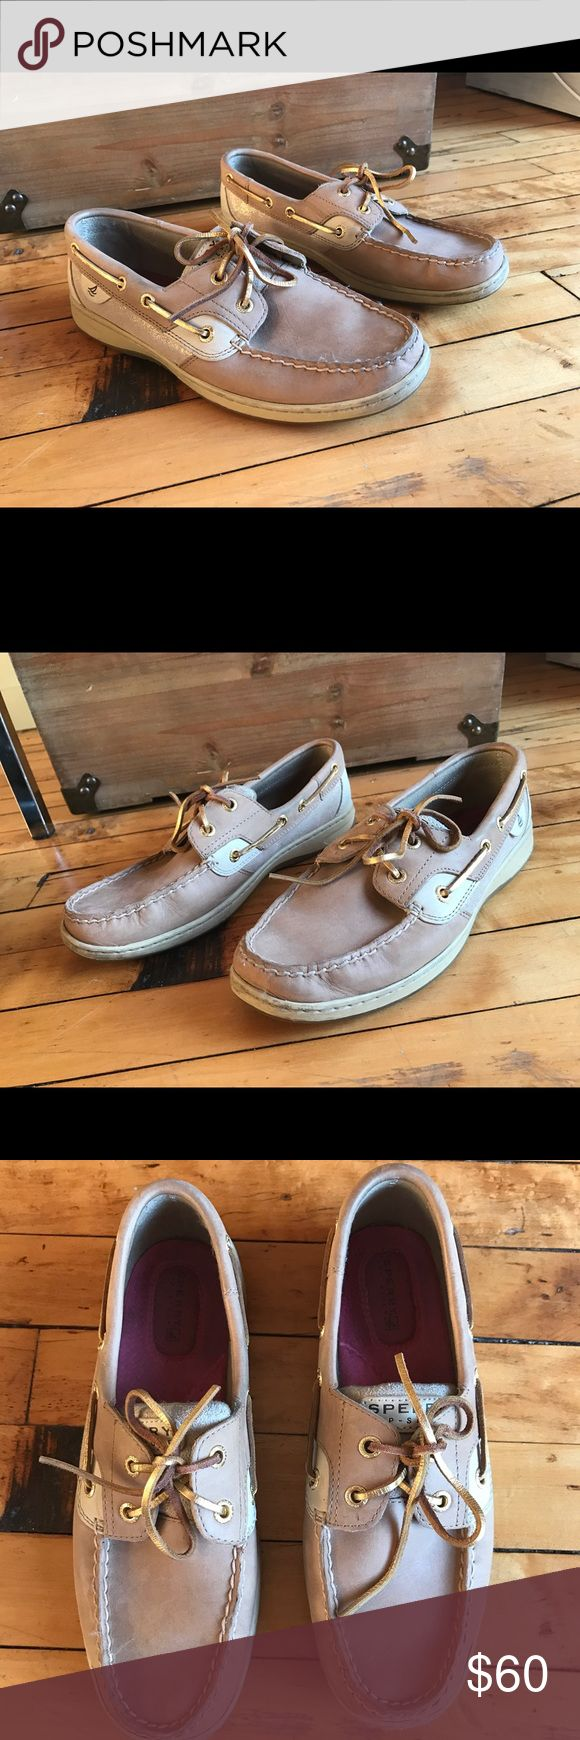 Sperry Women's Boat Shoes Excellent condition, women's sperry boat shoes. Size 8.5. No odor, rips, tears of stains. Probably worn less than 5 times. Pretty gold accents on side and on laces. Sperry Top-Sider Shoes Sneakers